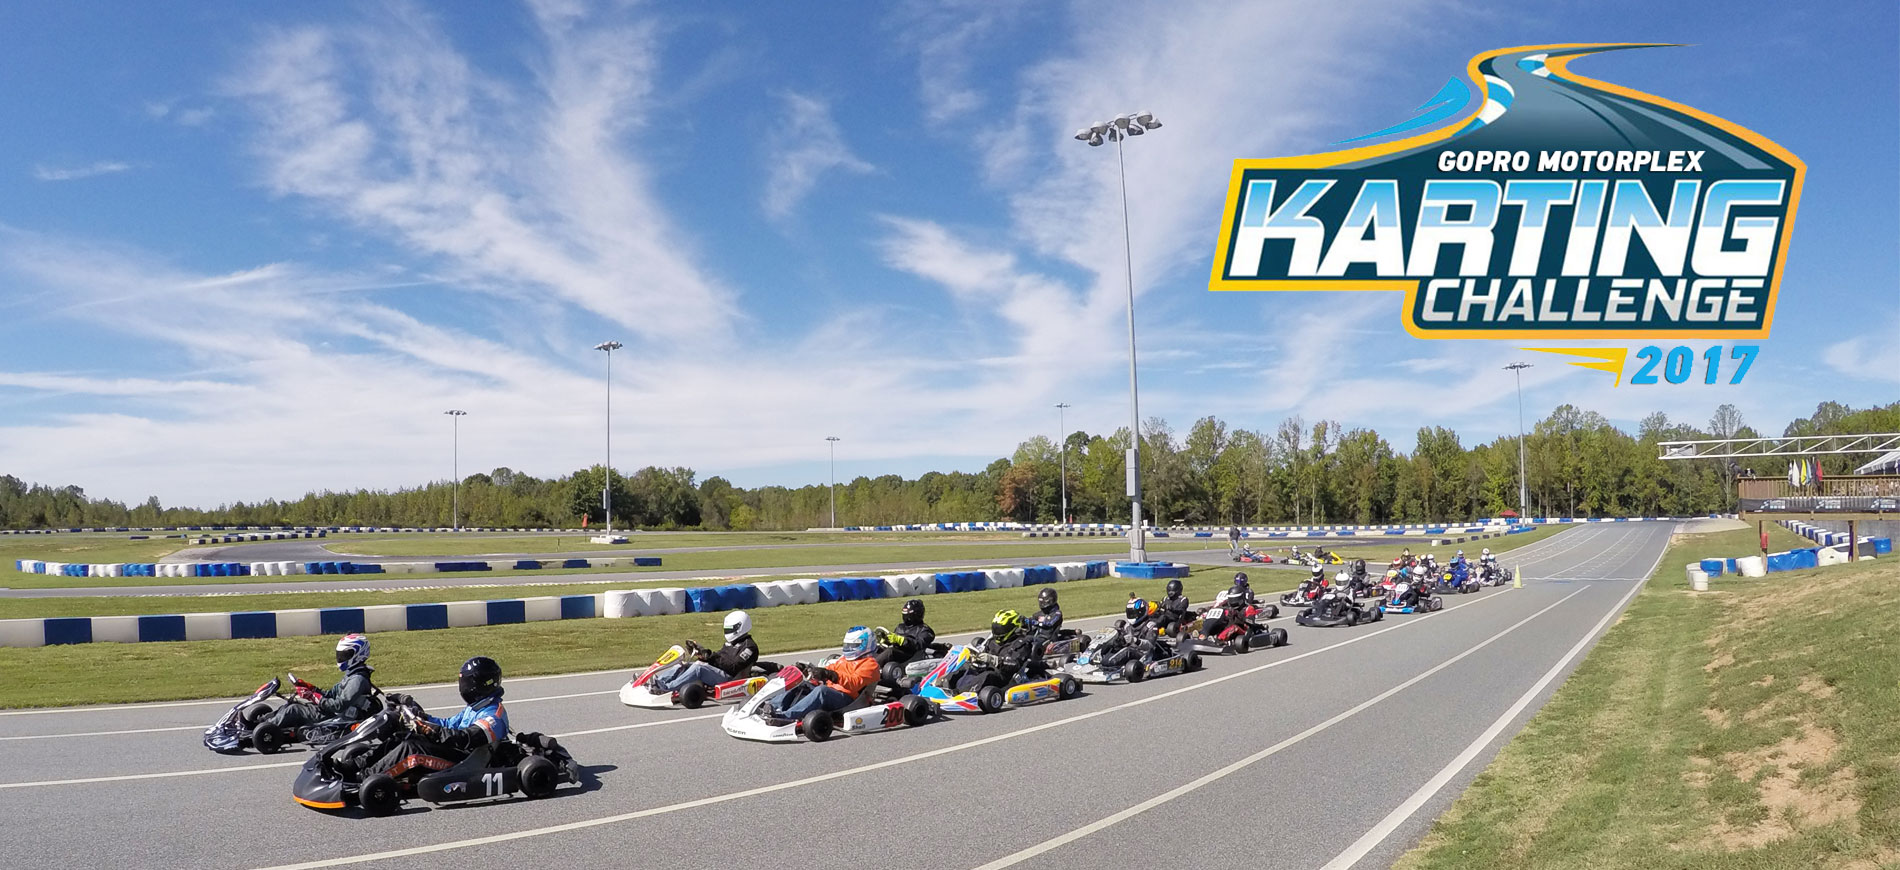 Let S Go Karting At Gopro Motorplex In Mooresville Nc